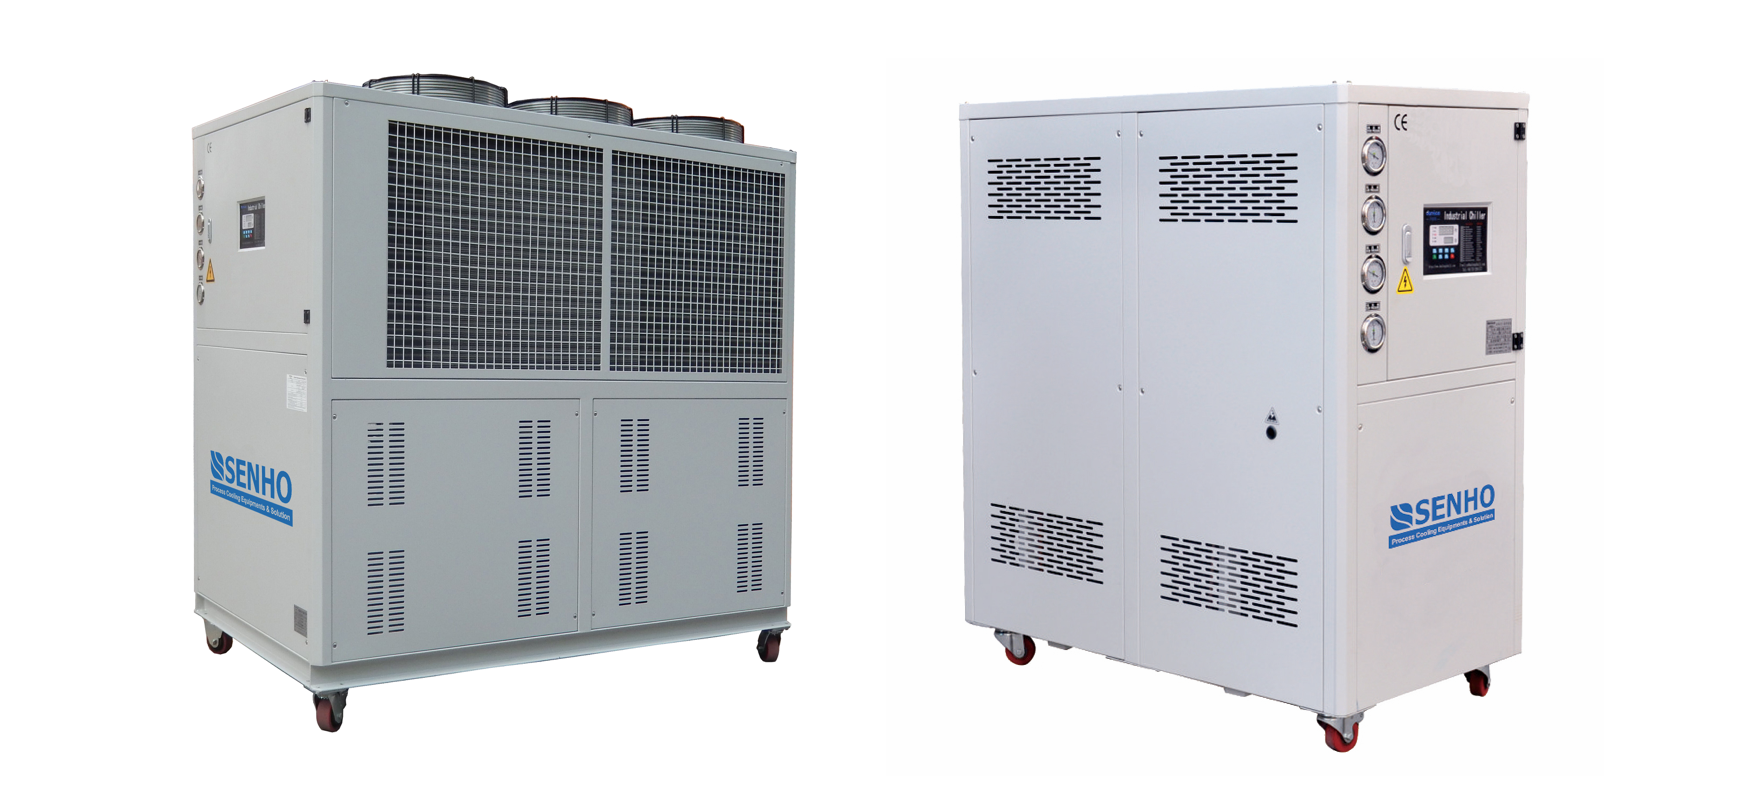 What is the Difference between Air Cooled and Water Cooled Chiller?